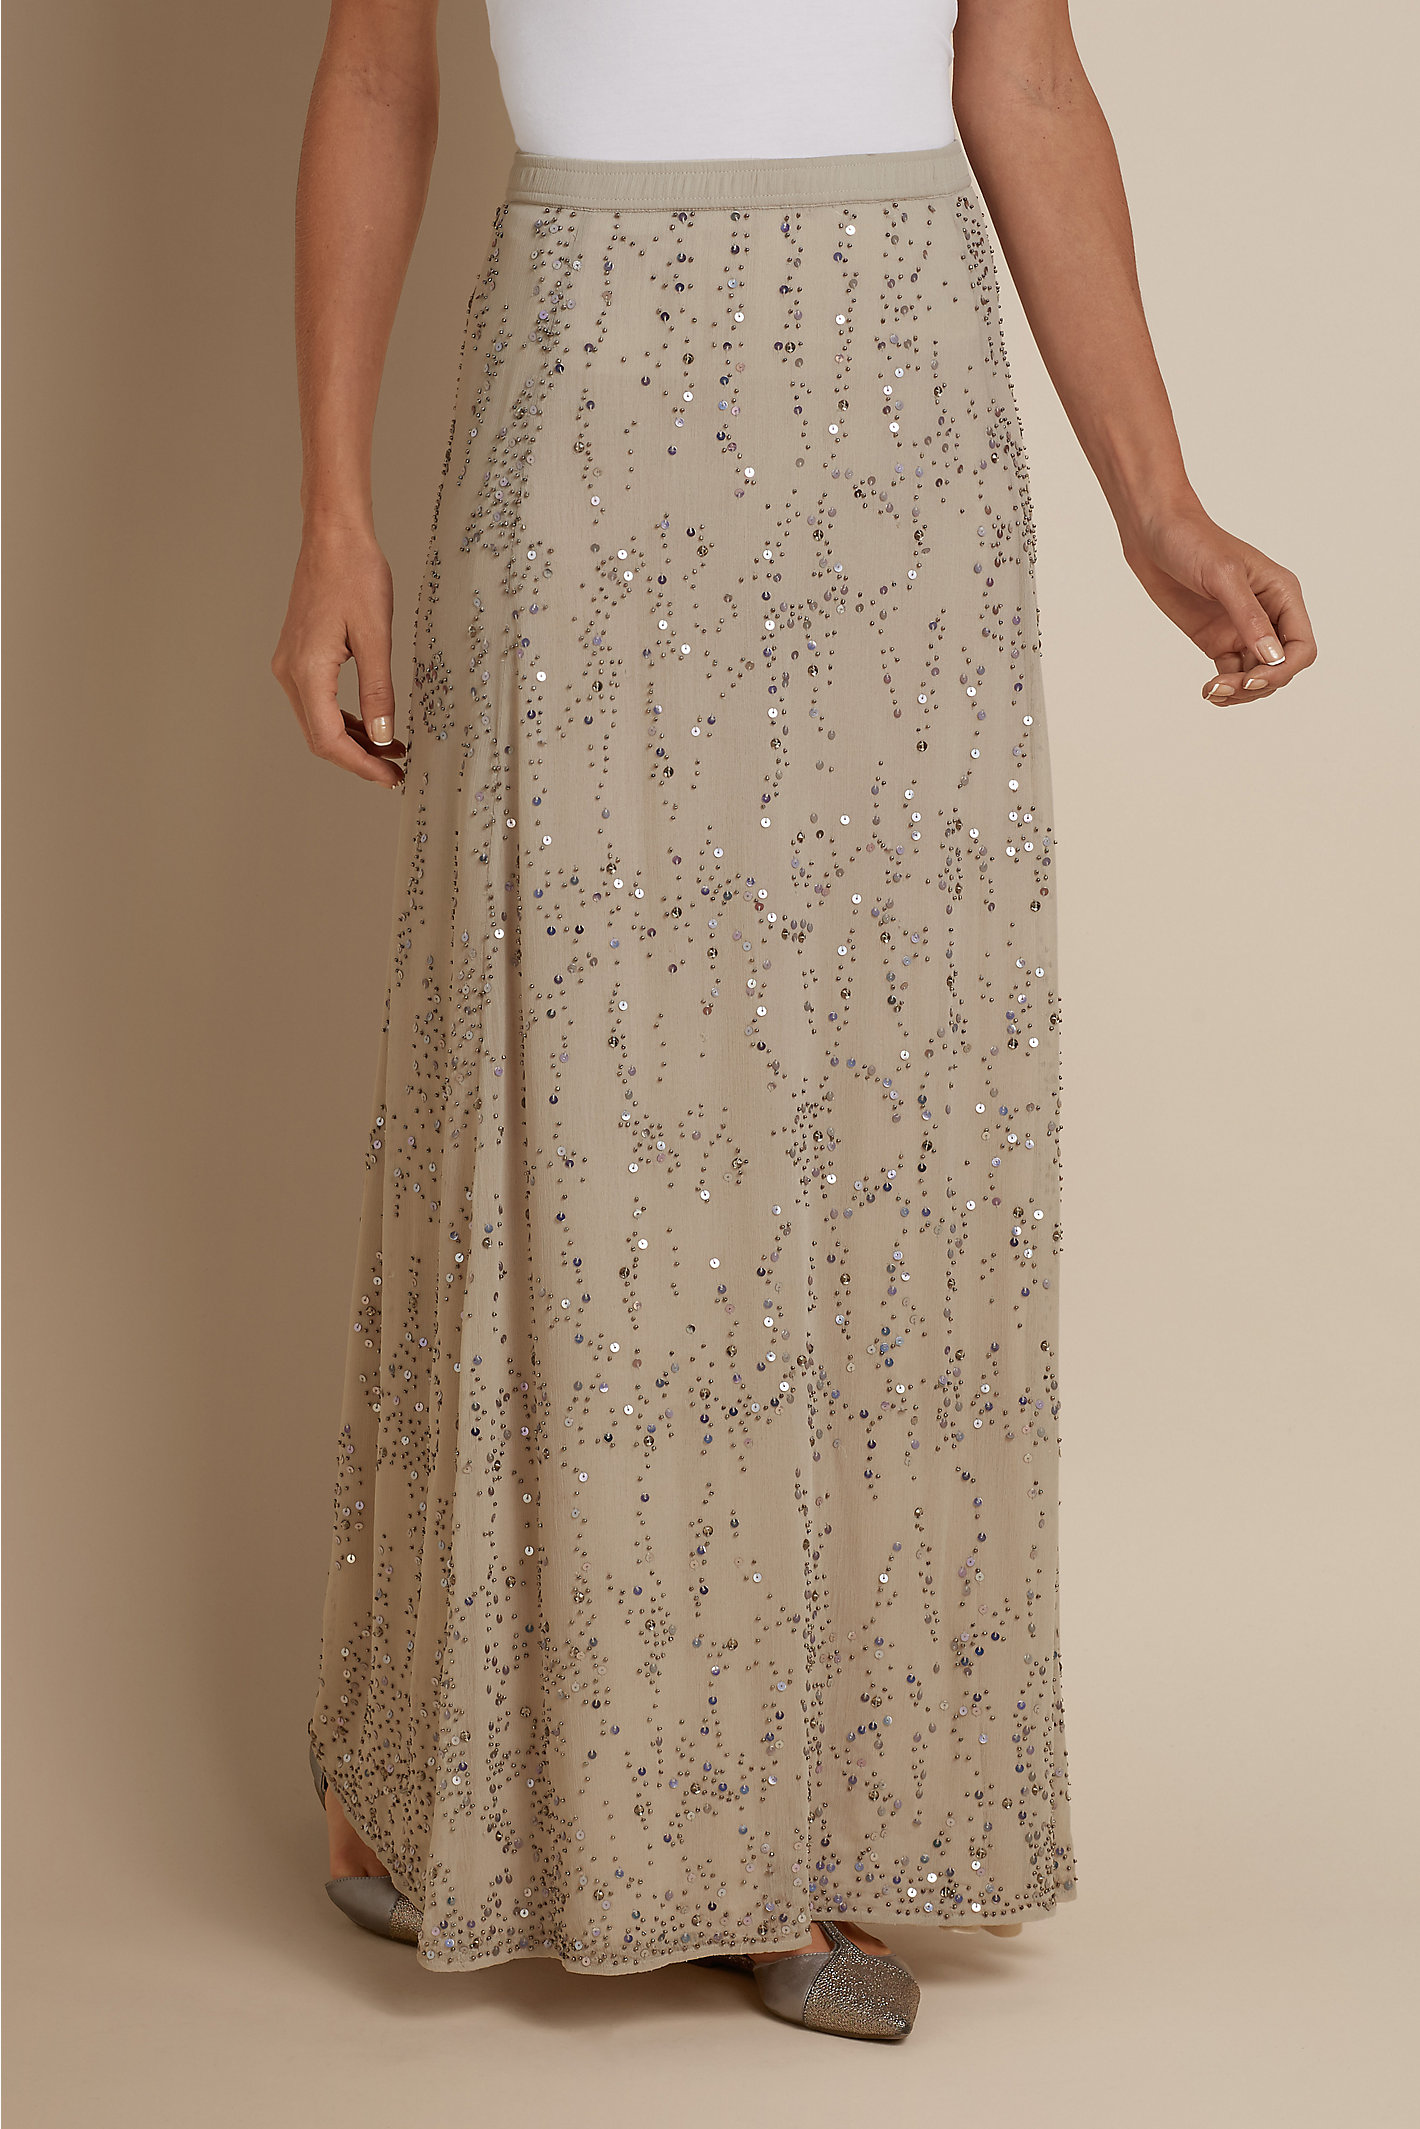 TALL CHAMPAGNE DREAMS SKIRT